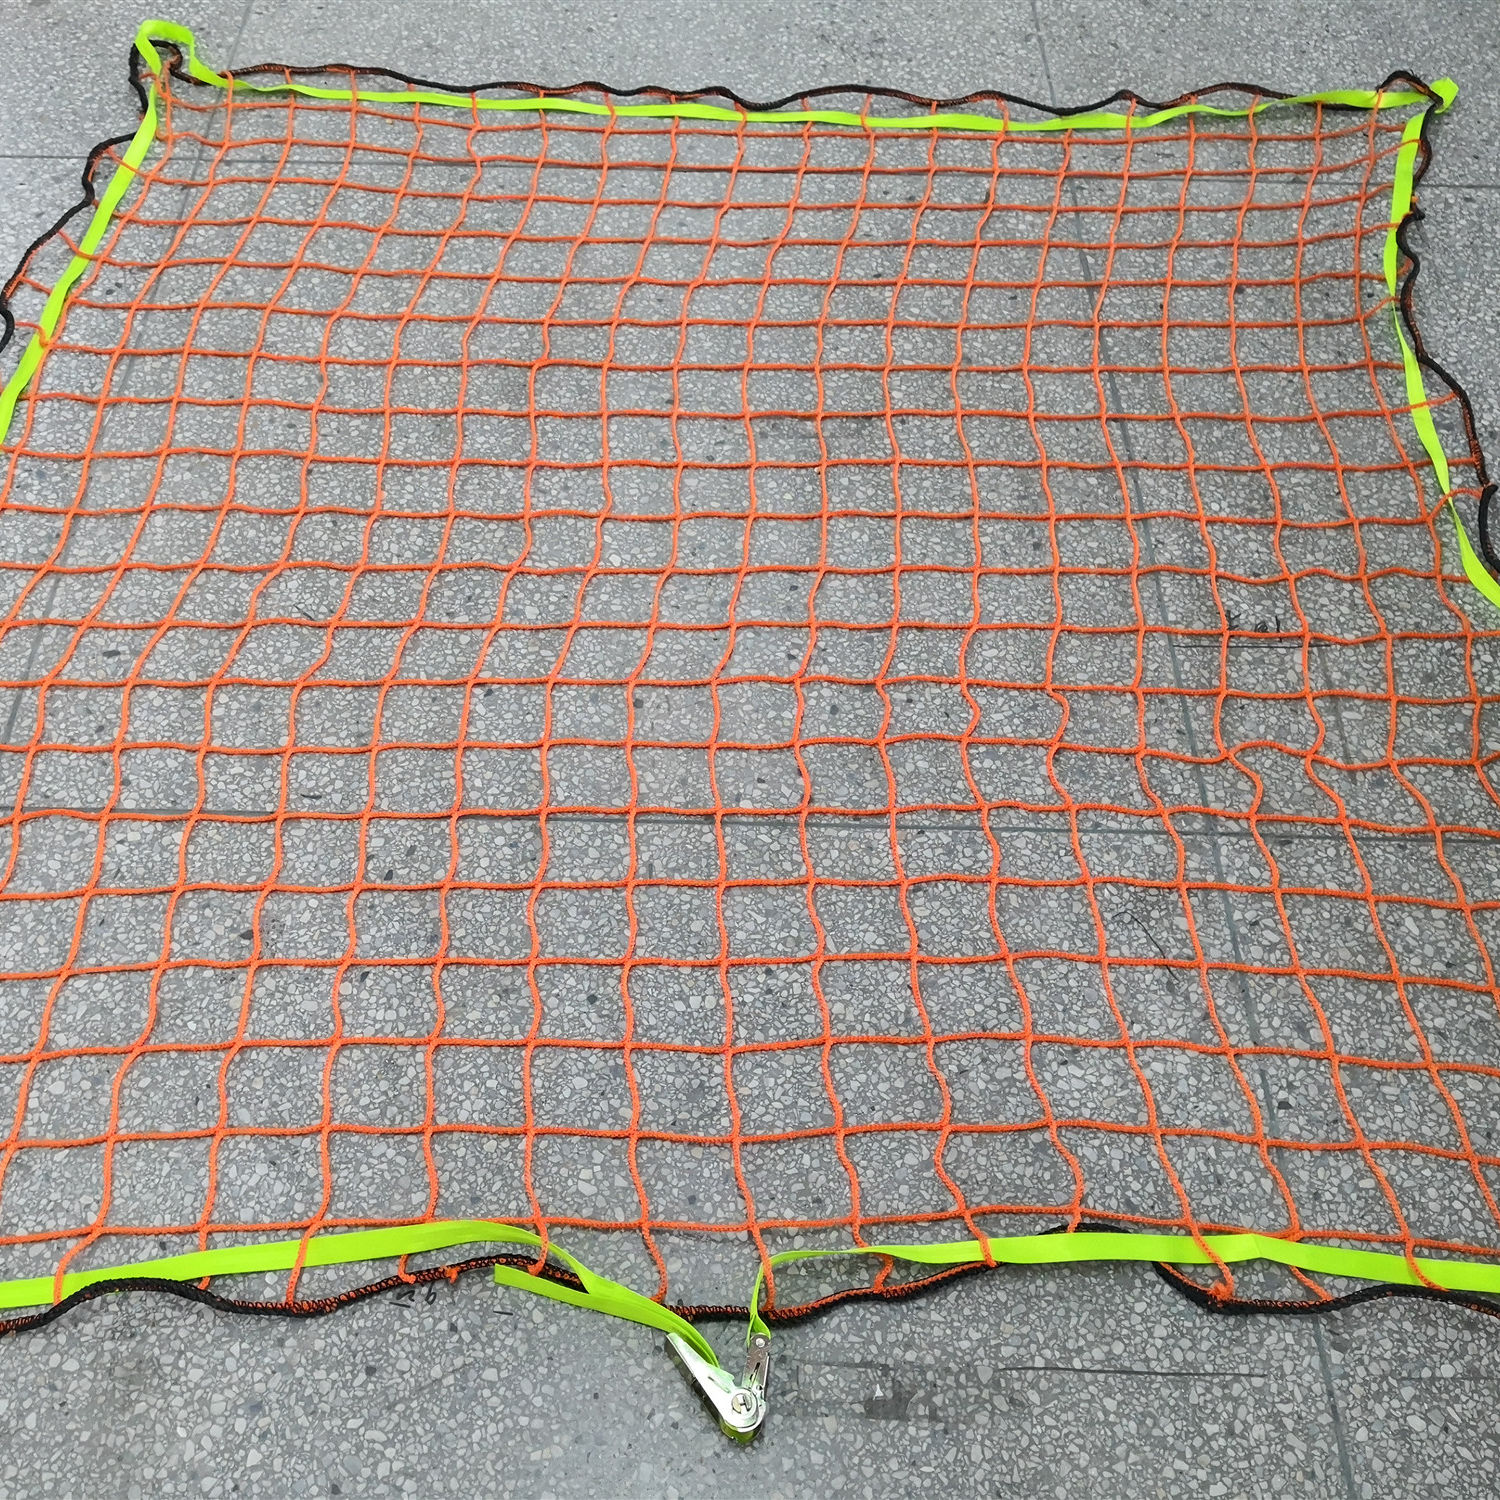 PP Knotless safety netting